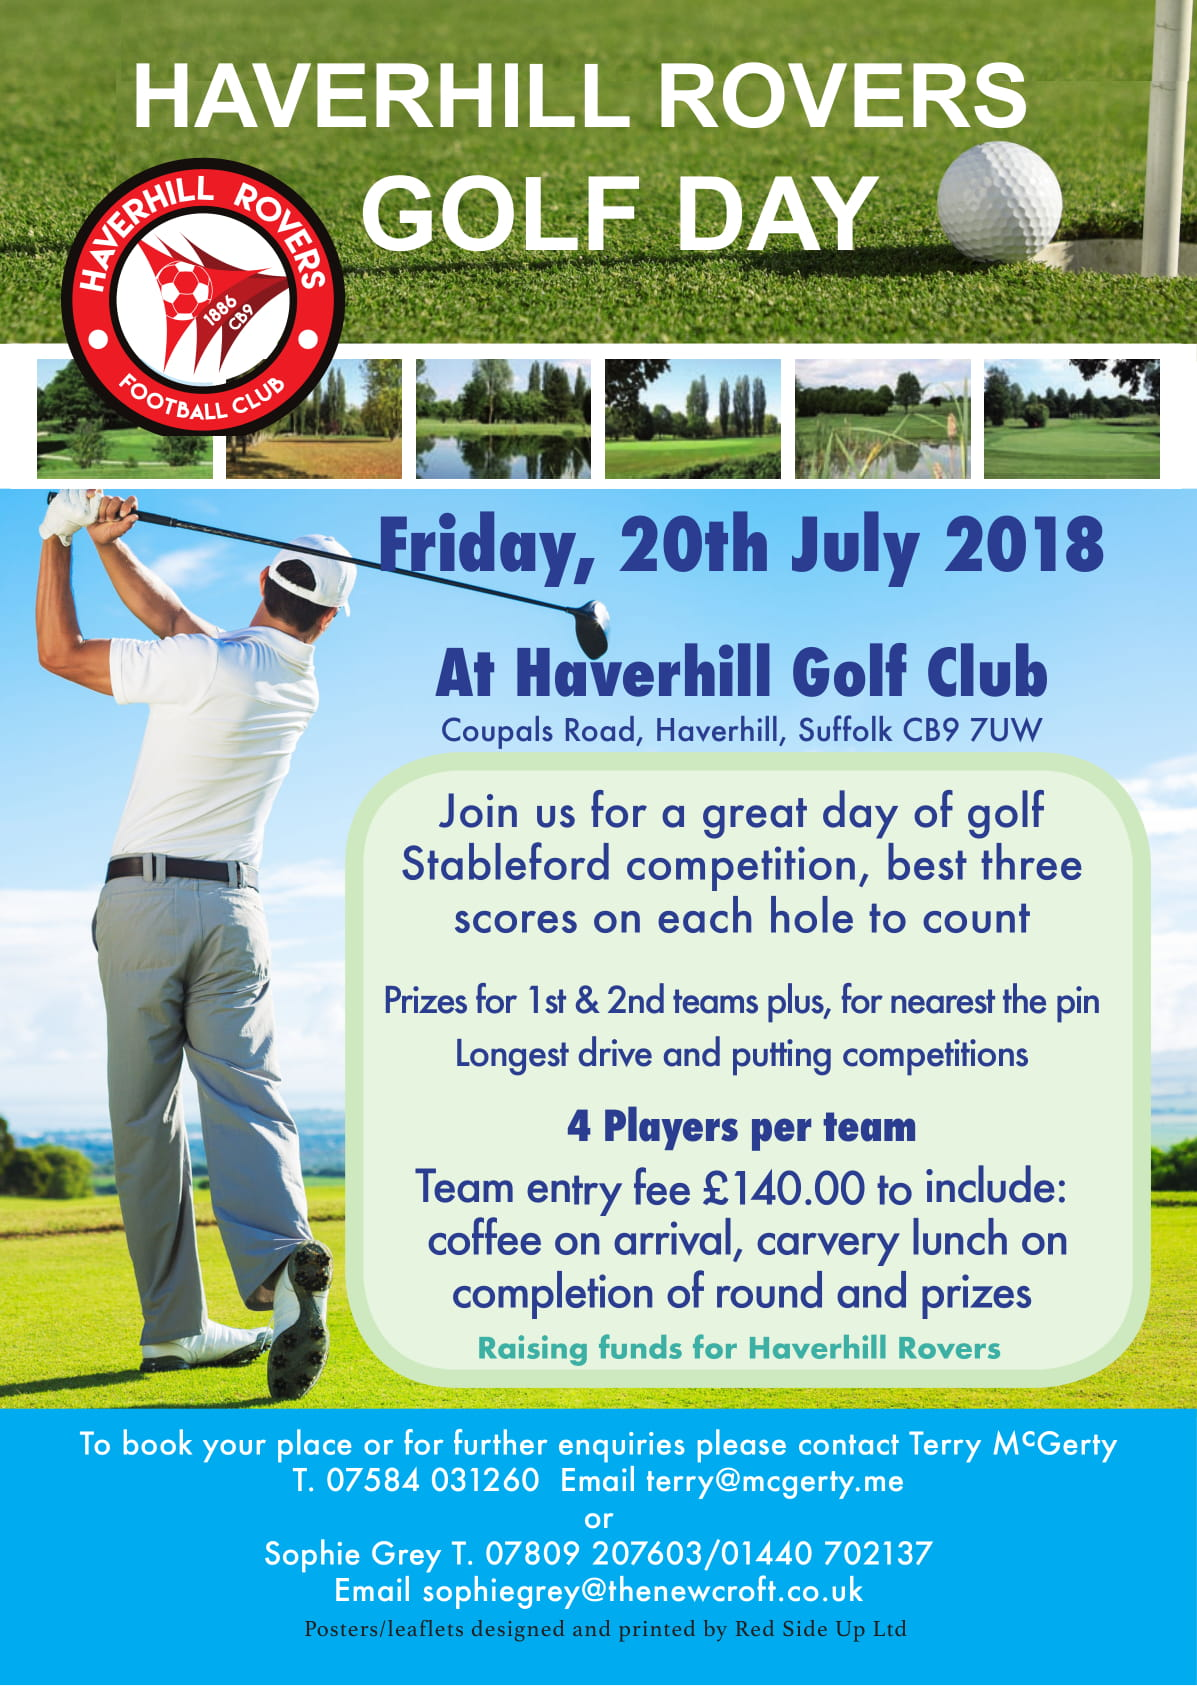 Haverhill Rovers Golf Day – Friday 20th July 2018